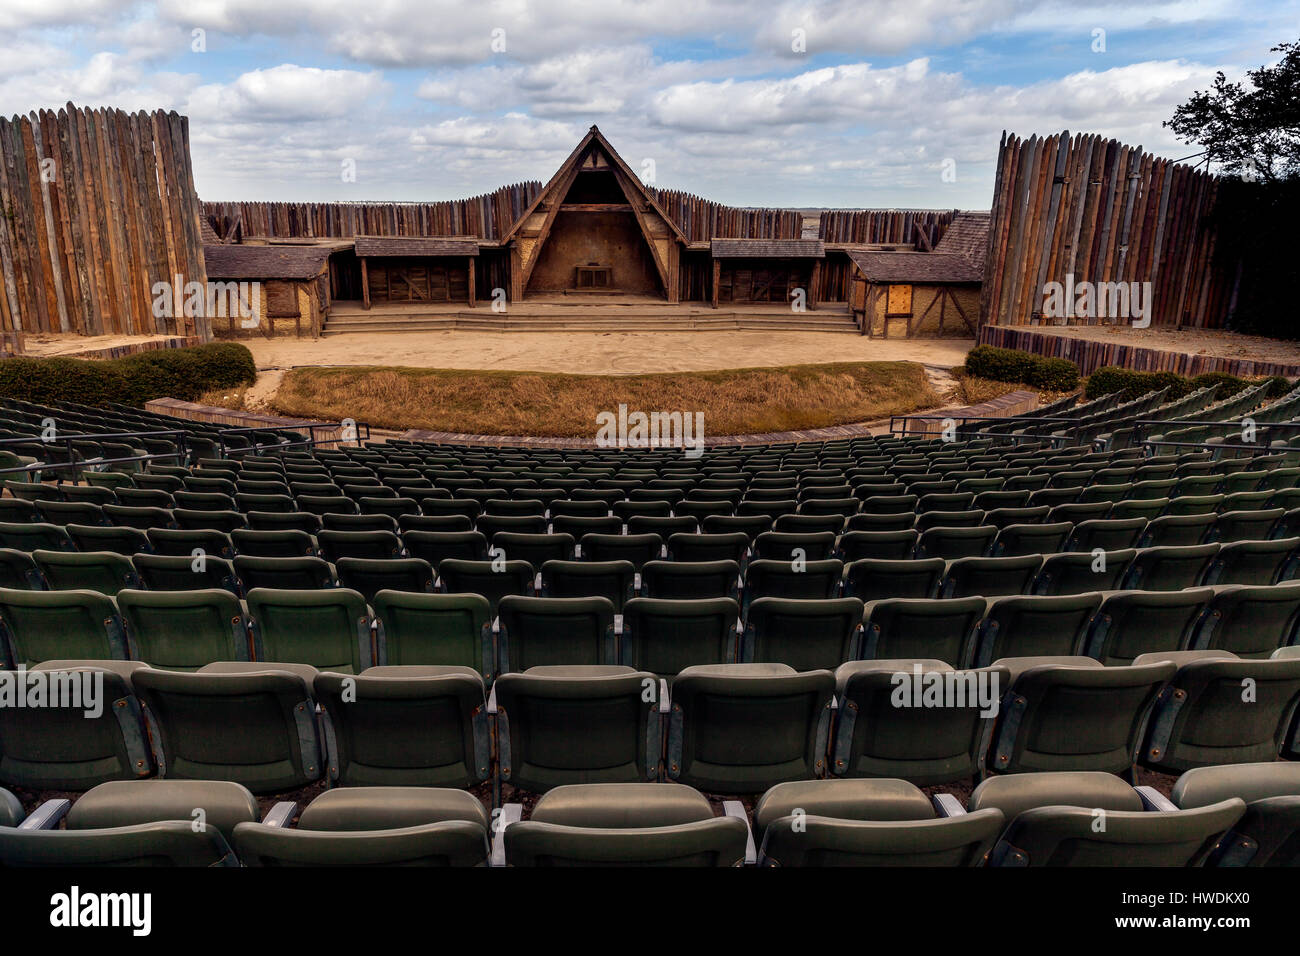 NC00636-00...NORTH CAROLINA - The Lost Colony Theater at Fort Raleigh National Historic Site on Roanoke Island - Stock Image